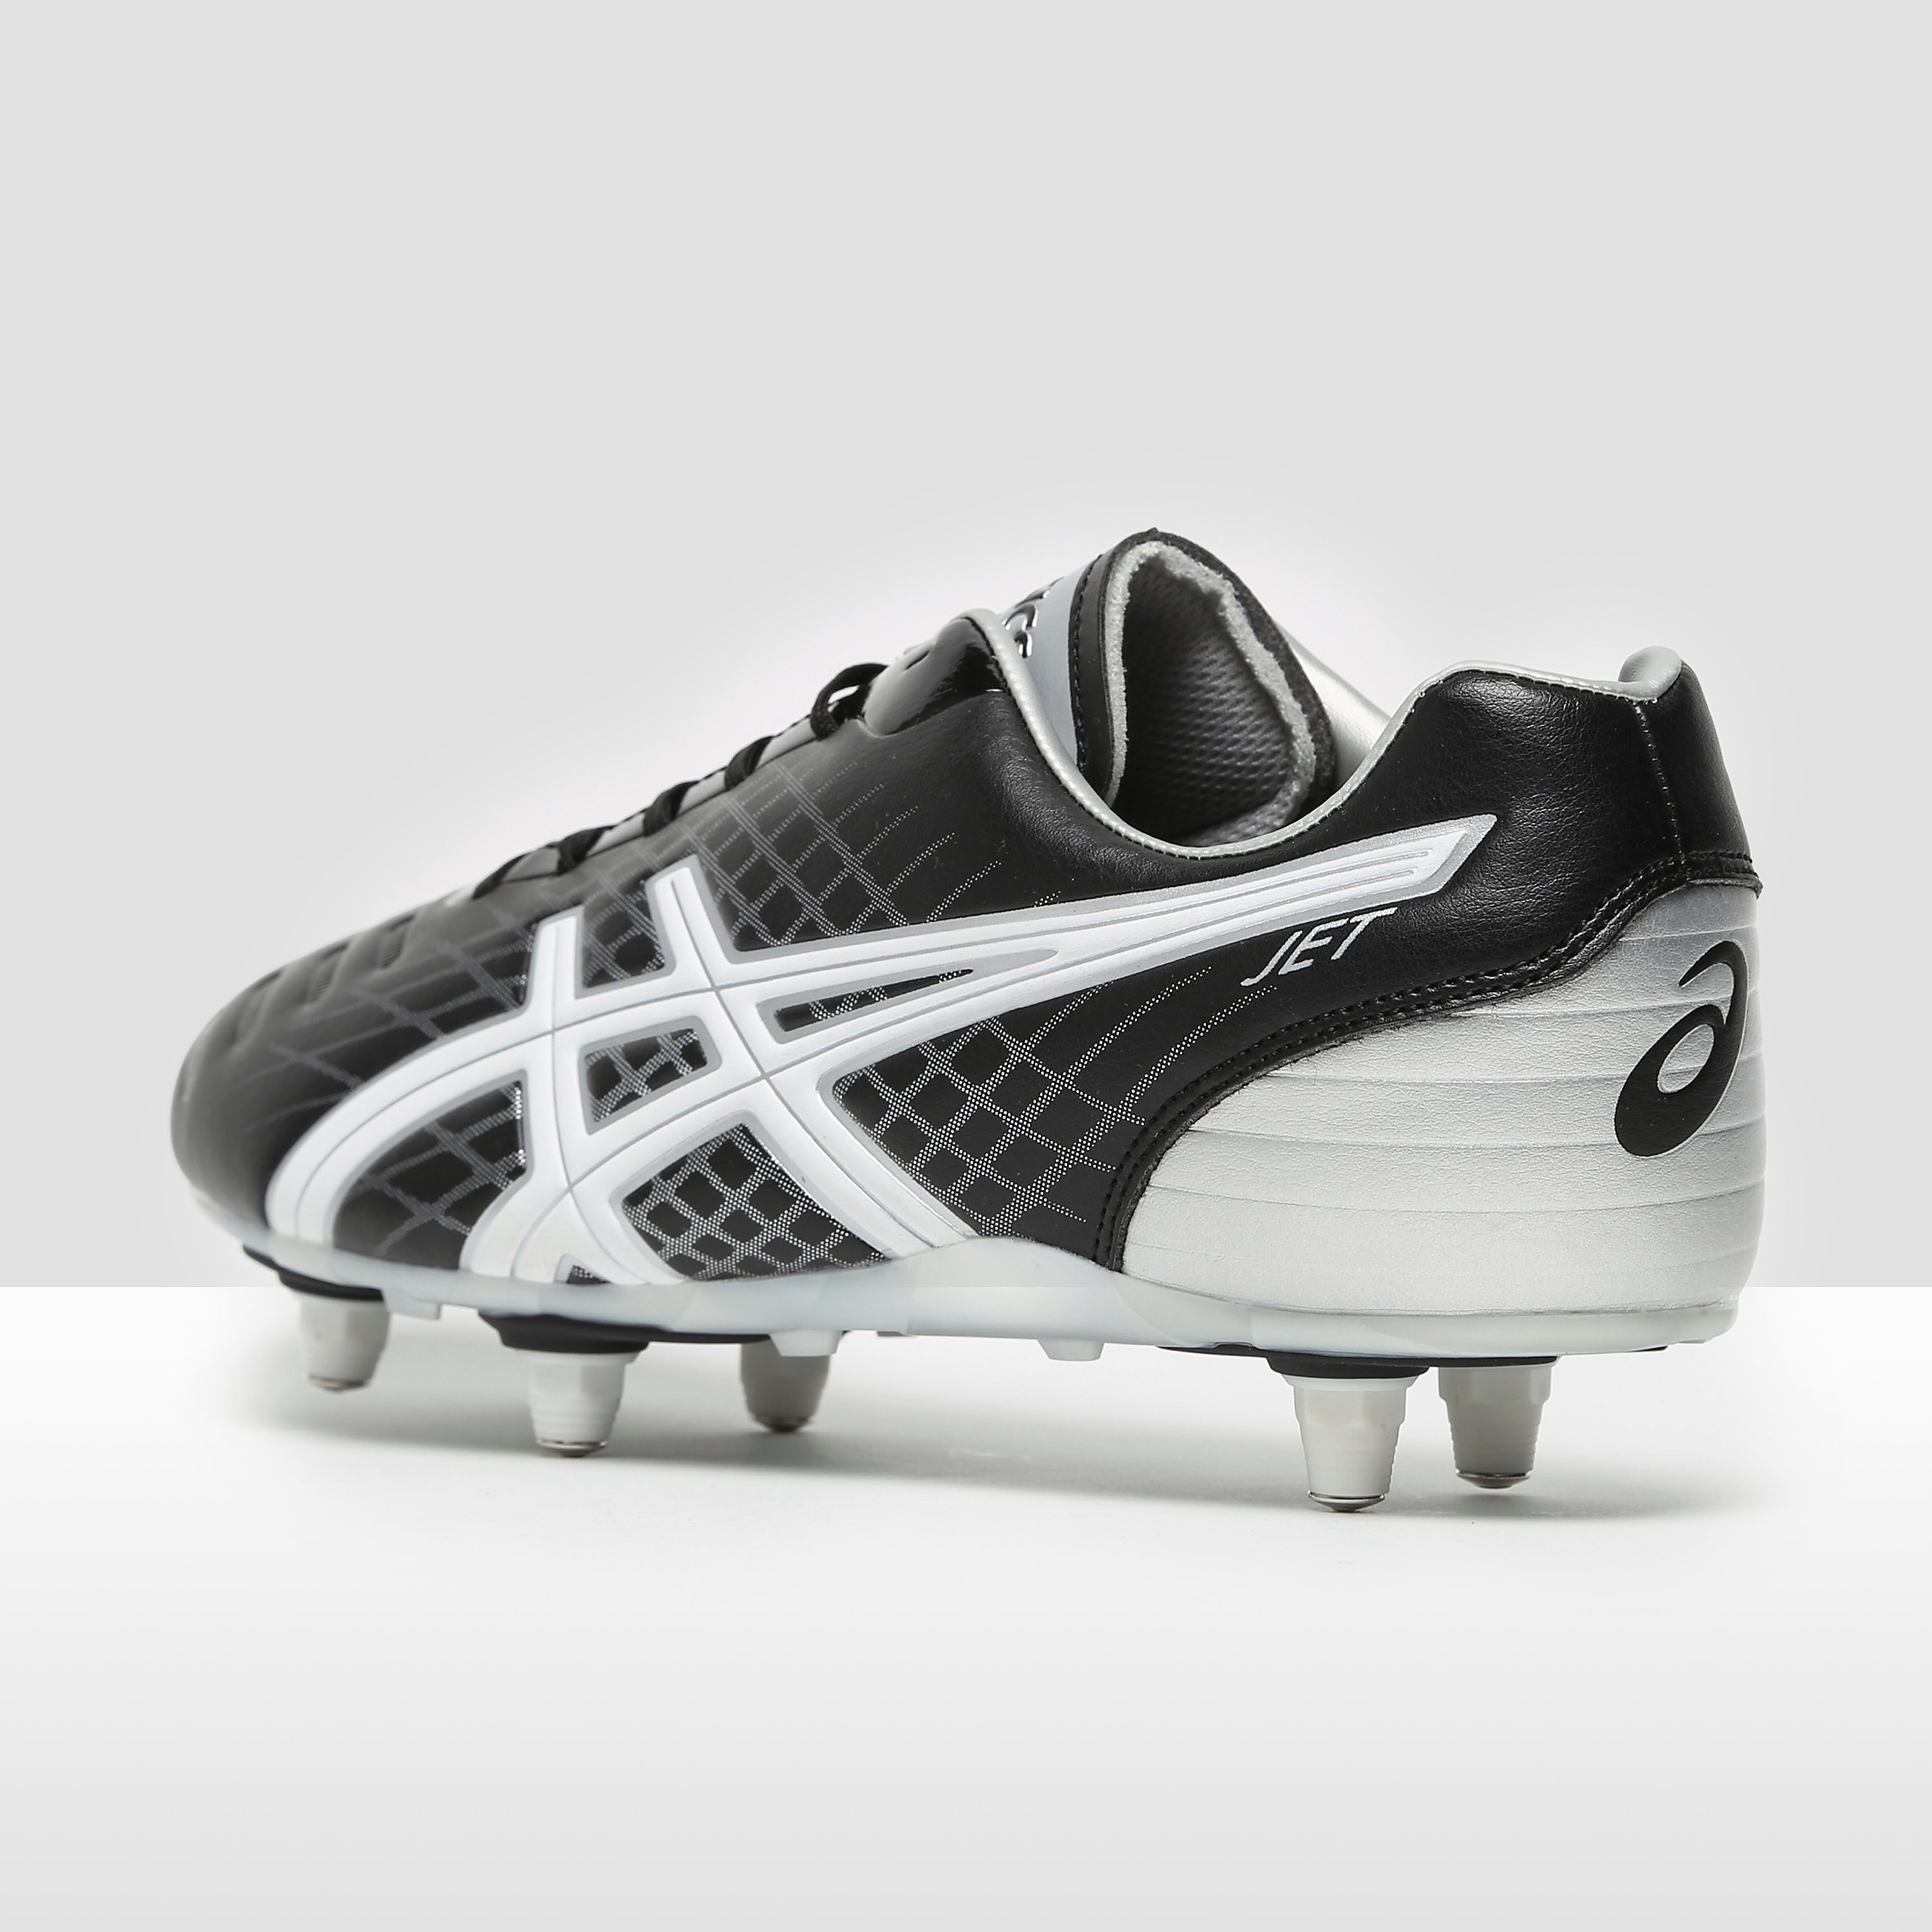 ASICS ASICS Jet ST Rugby Boots